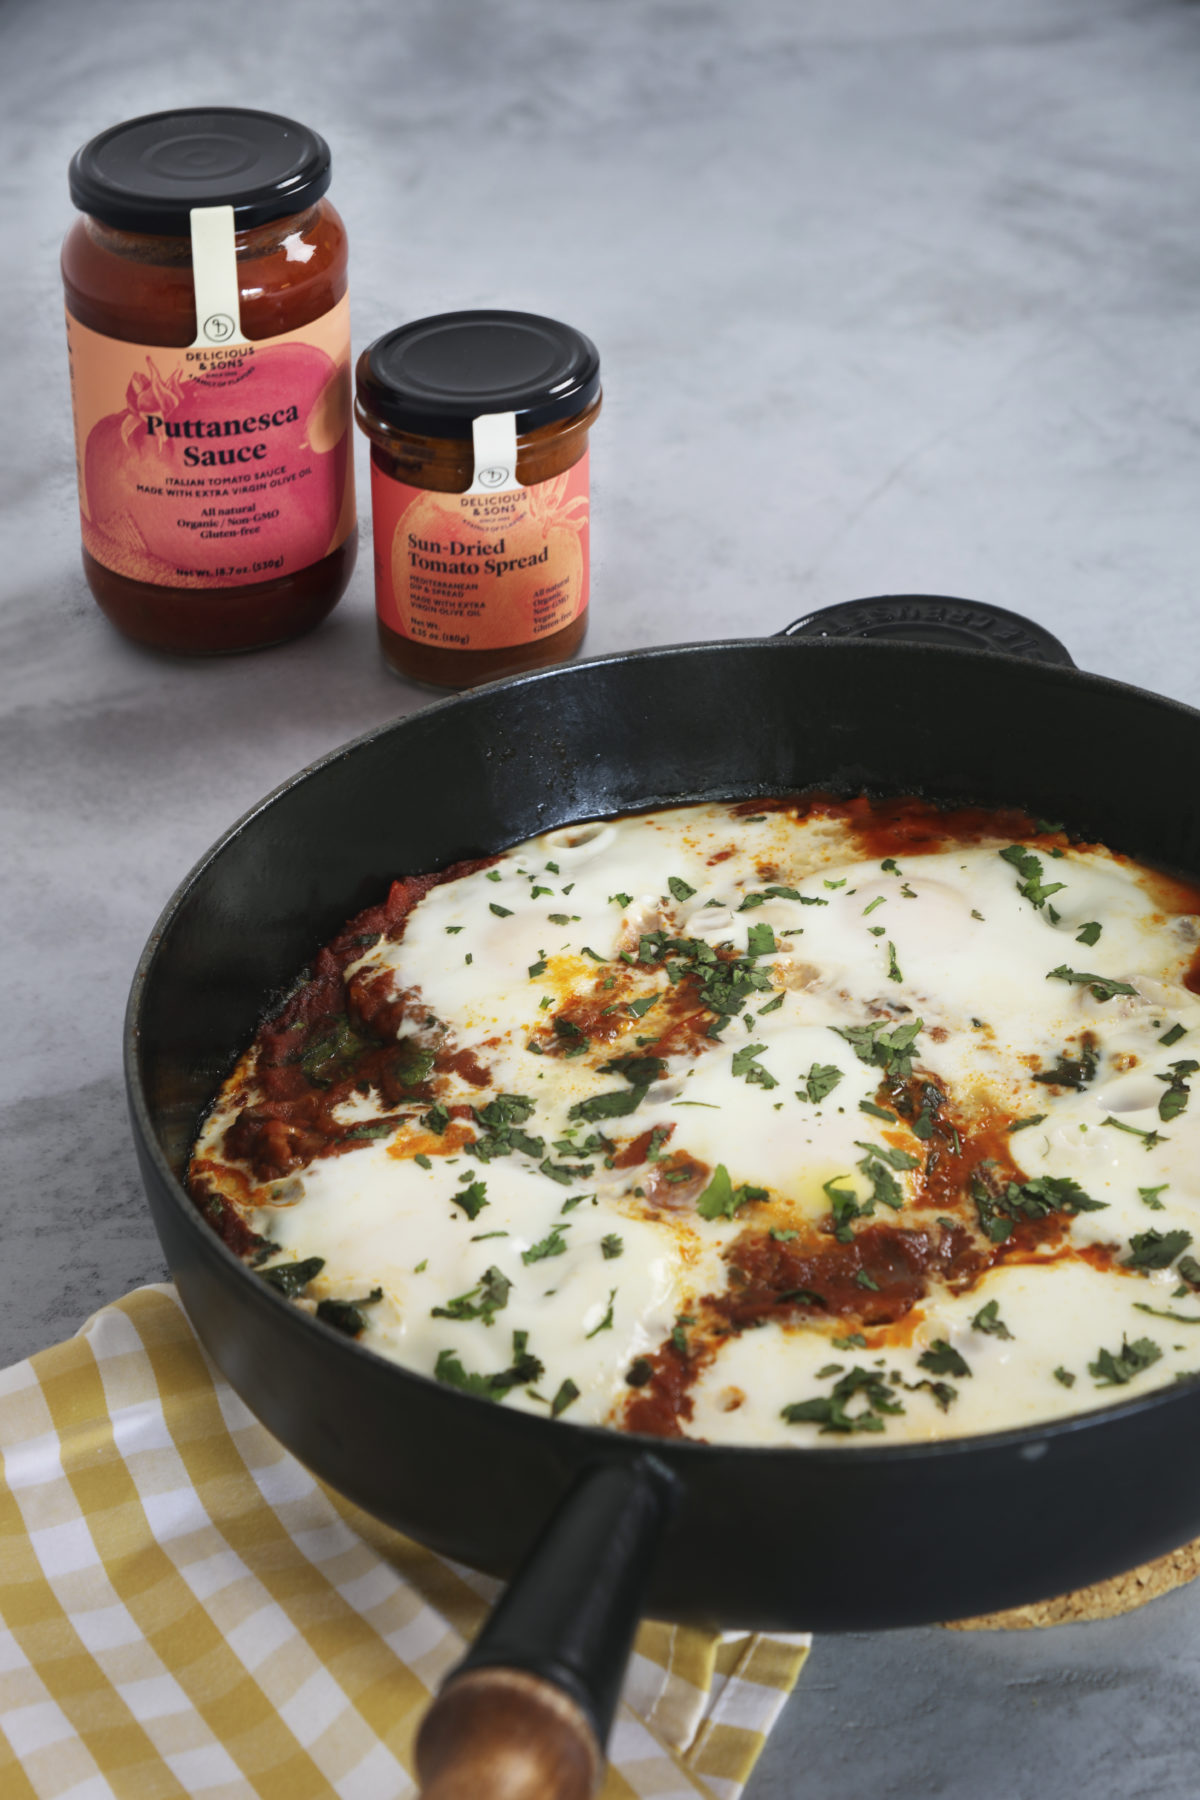 Shakshuka with Spinach, Puttanesca Sauce and Sun-Dried Tomato Spread by Alberto Rey — Delicious & Sons